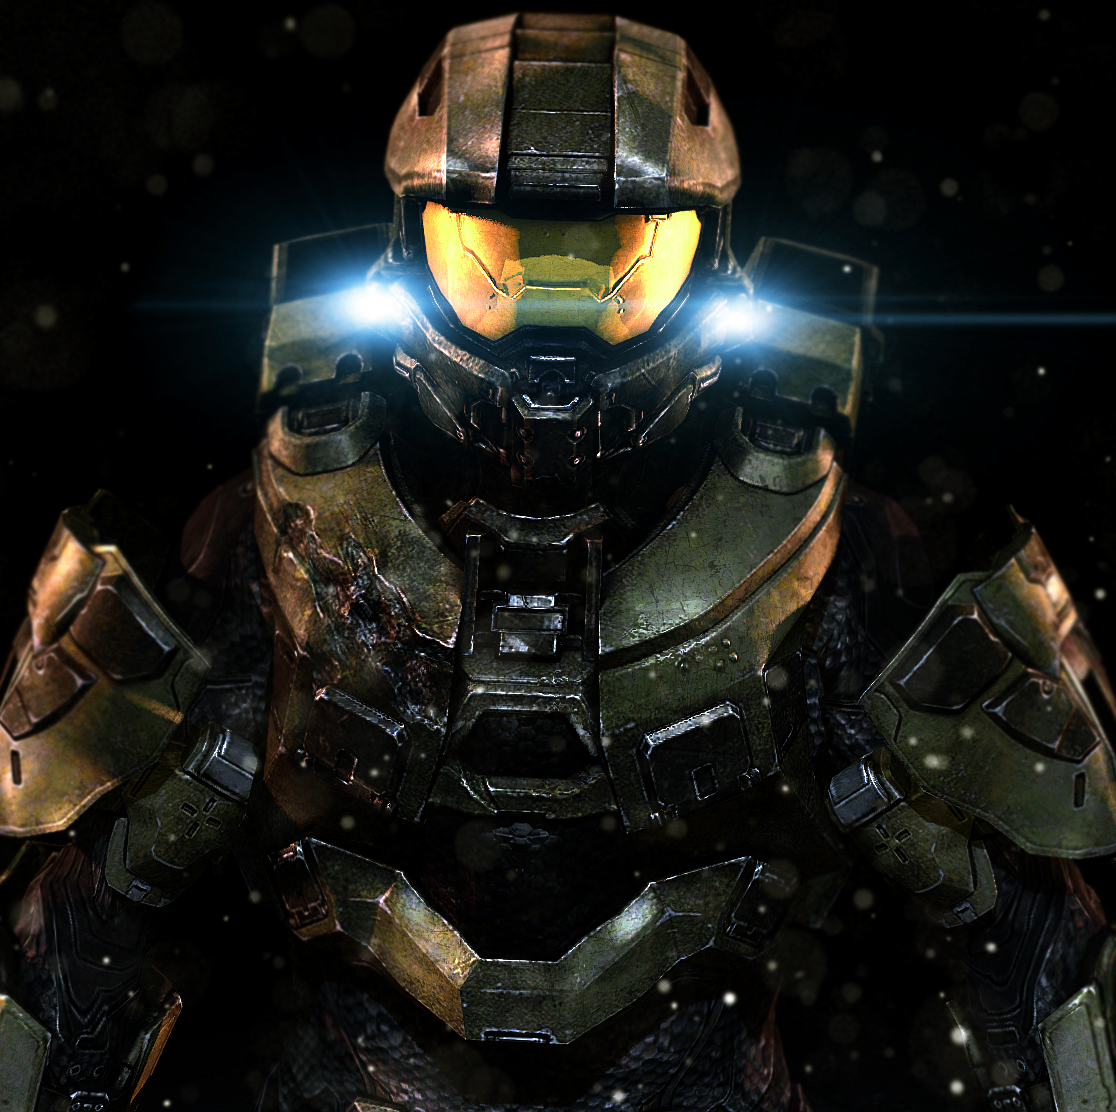 Team john 117 by on - Master chief in halo reach ...